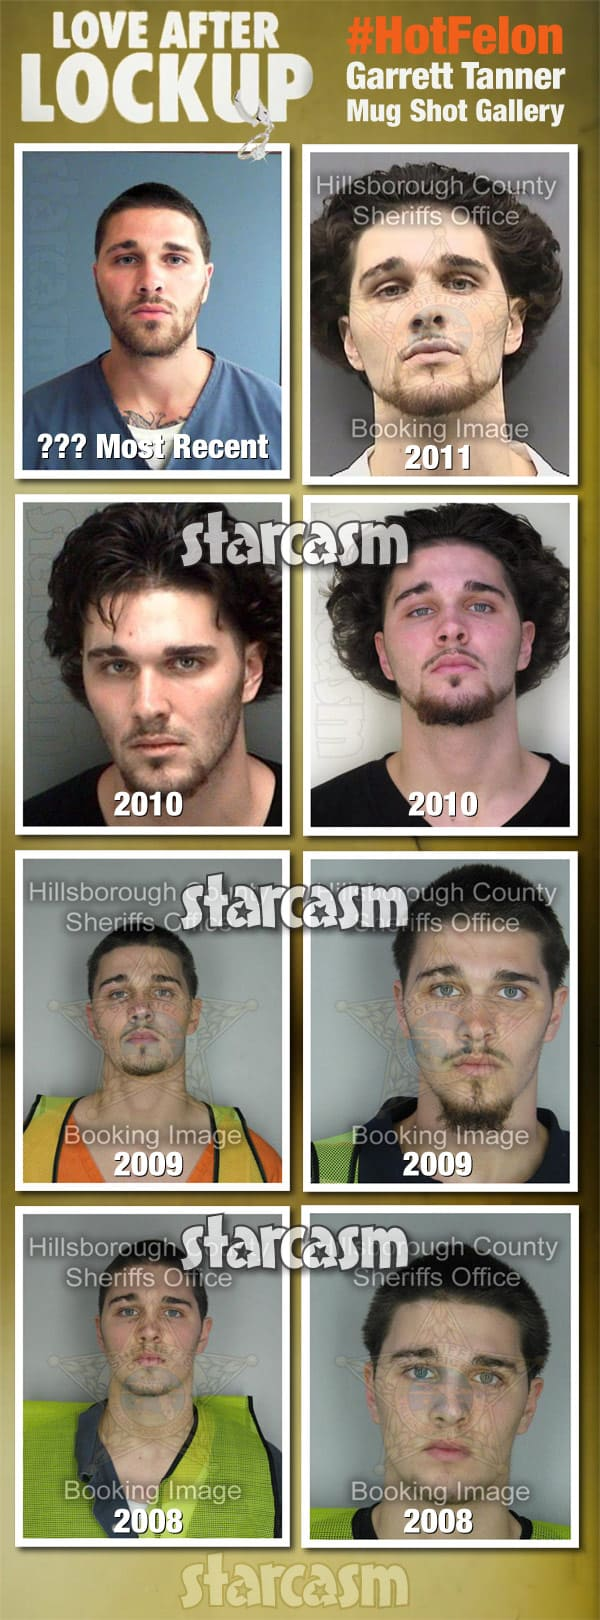 Love After Lockup Garrett Tanner mug shot photos arrests